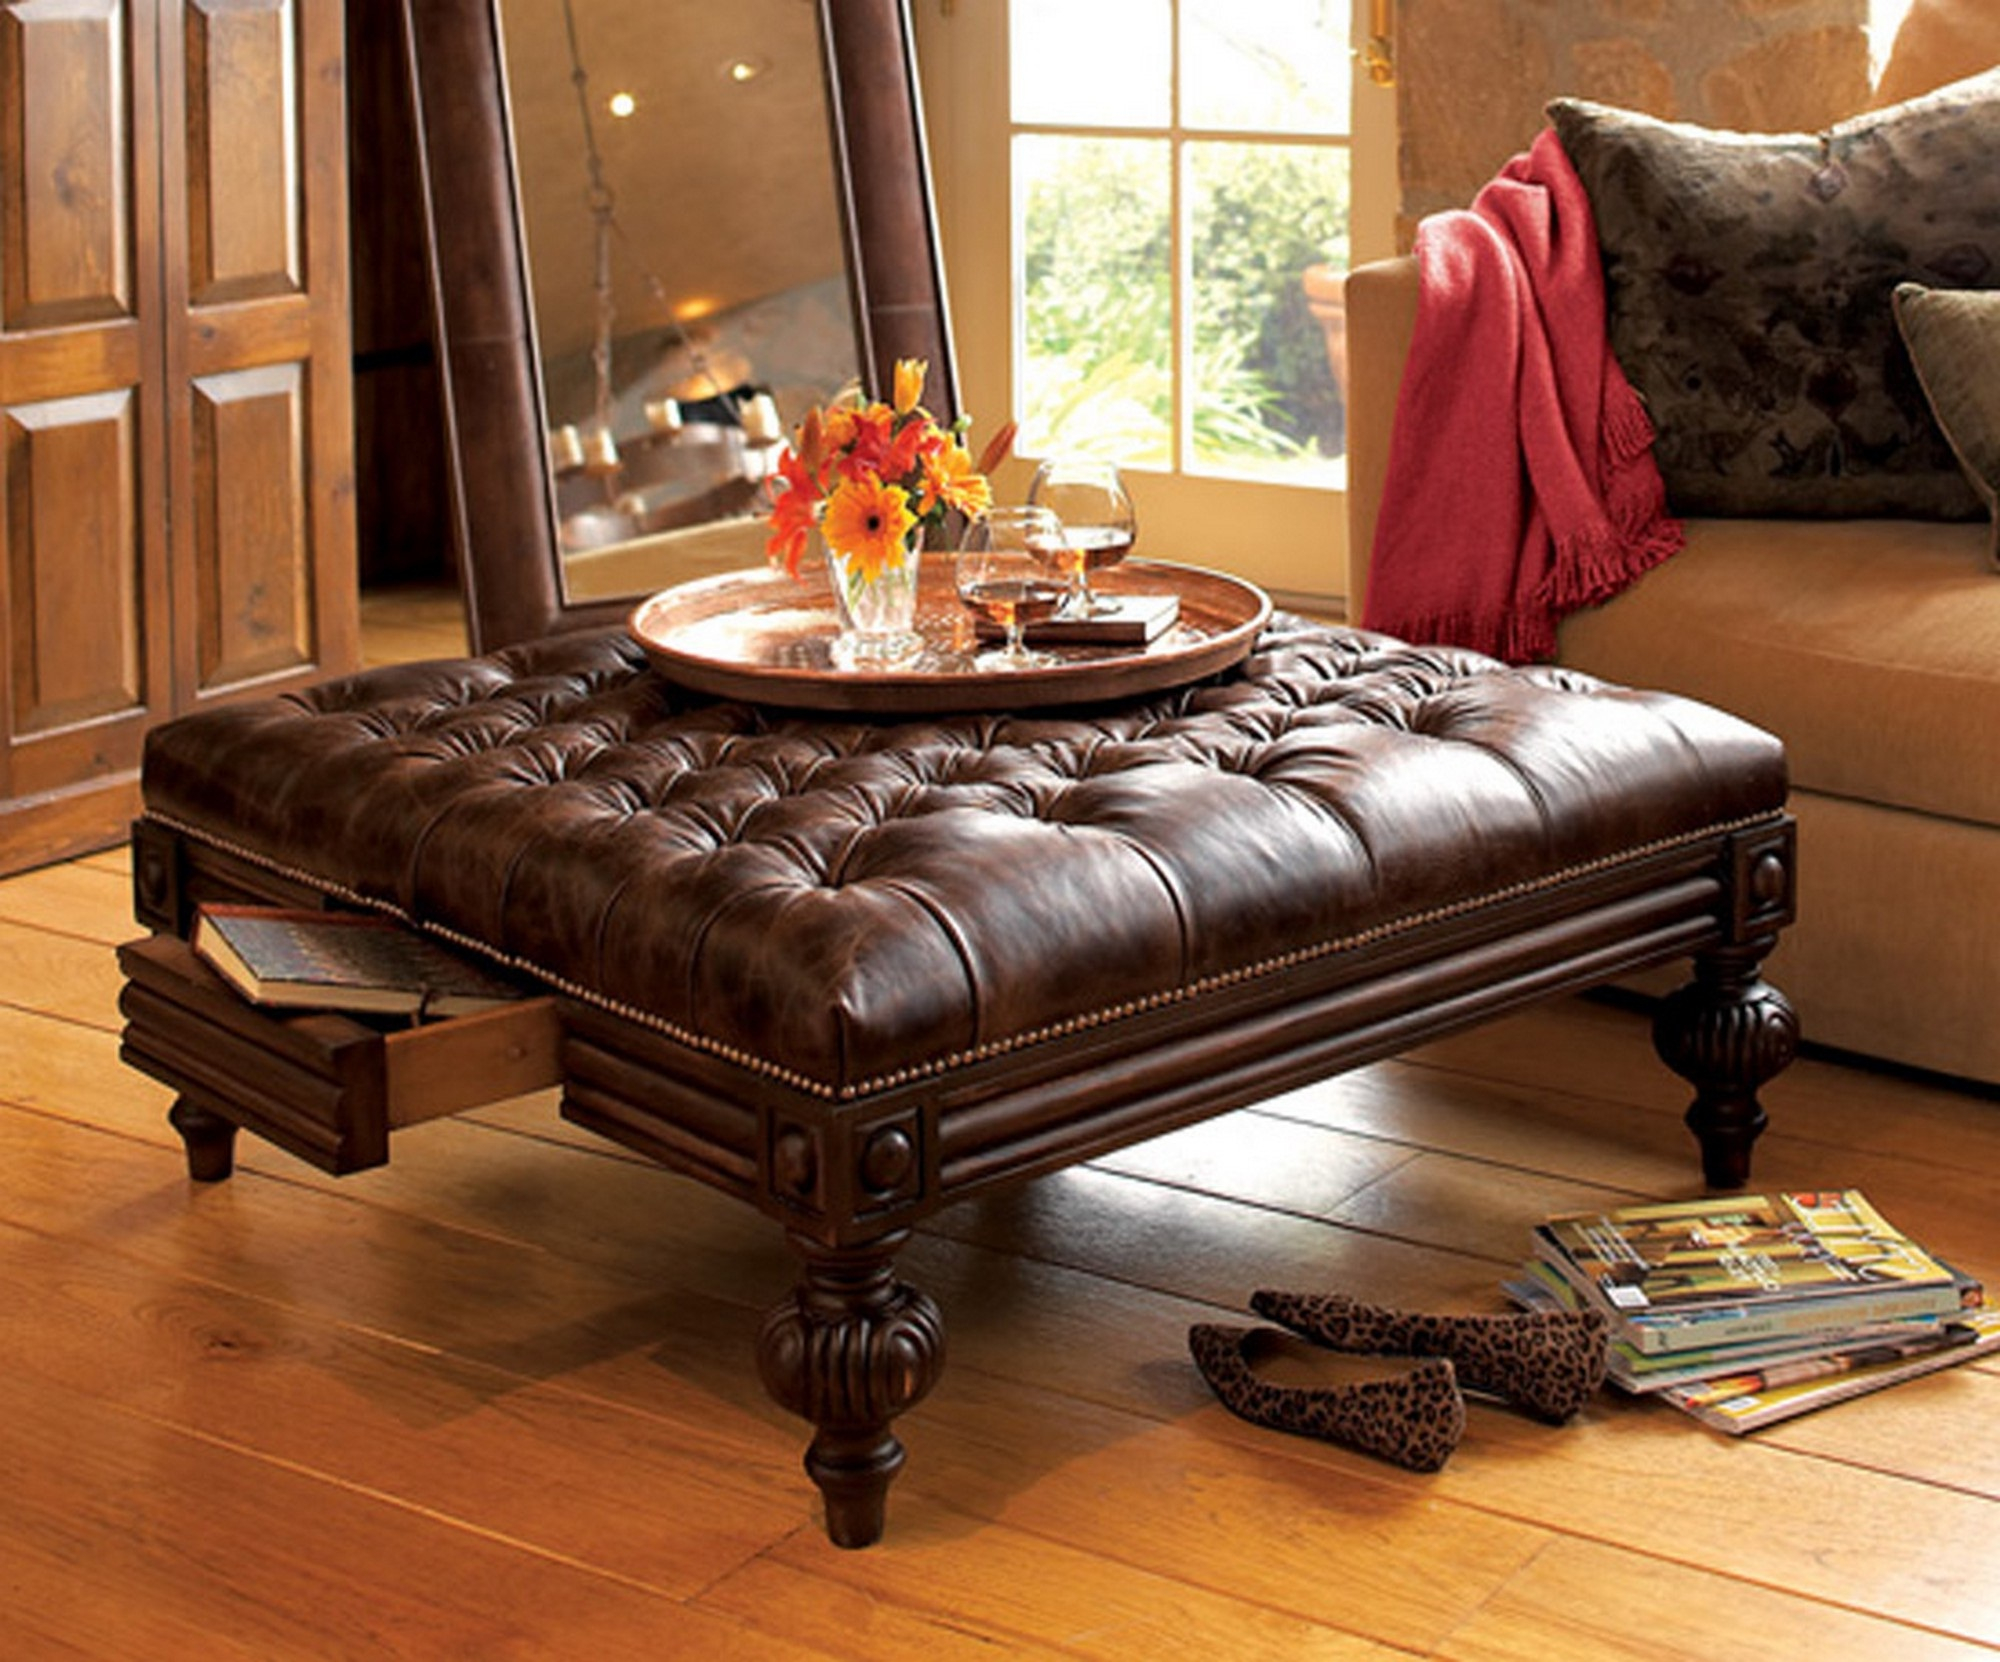 Lovable Storage Round Ottoman Coffee Table Walmart Large Round Ottoman Coffee Table Table Round Ottoman Tufted Large Round Ottoman Coffee Table Collections Coffee Tables Ideas Round Ottoman Coffee Tab houzz-03 Round Ottoman Coffee Table